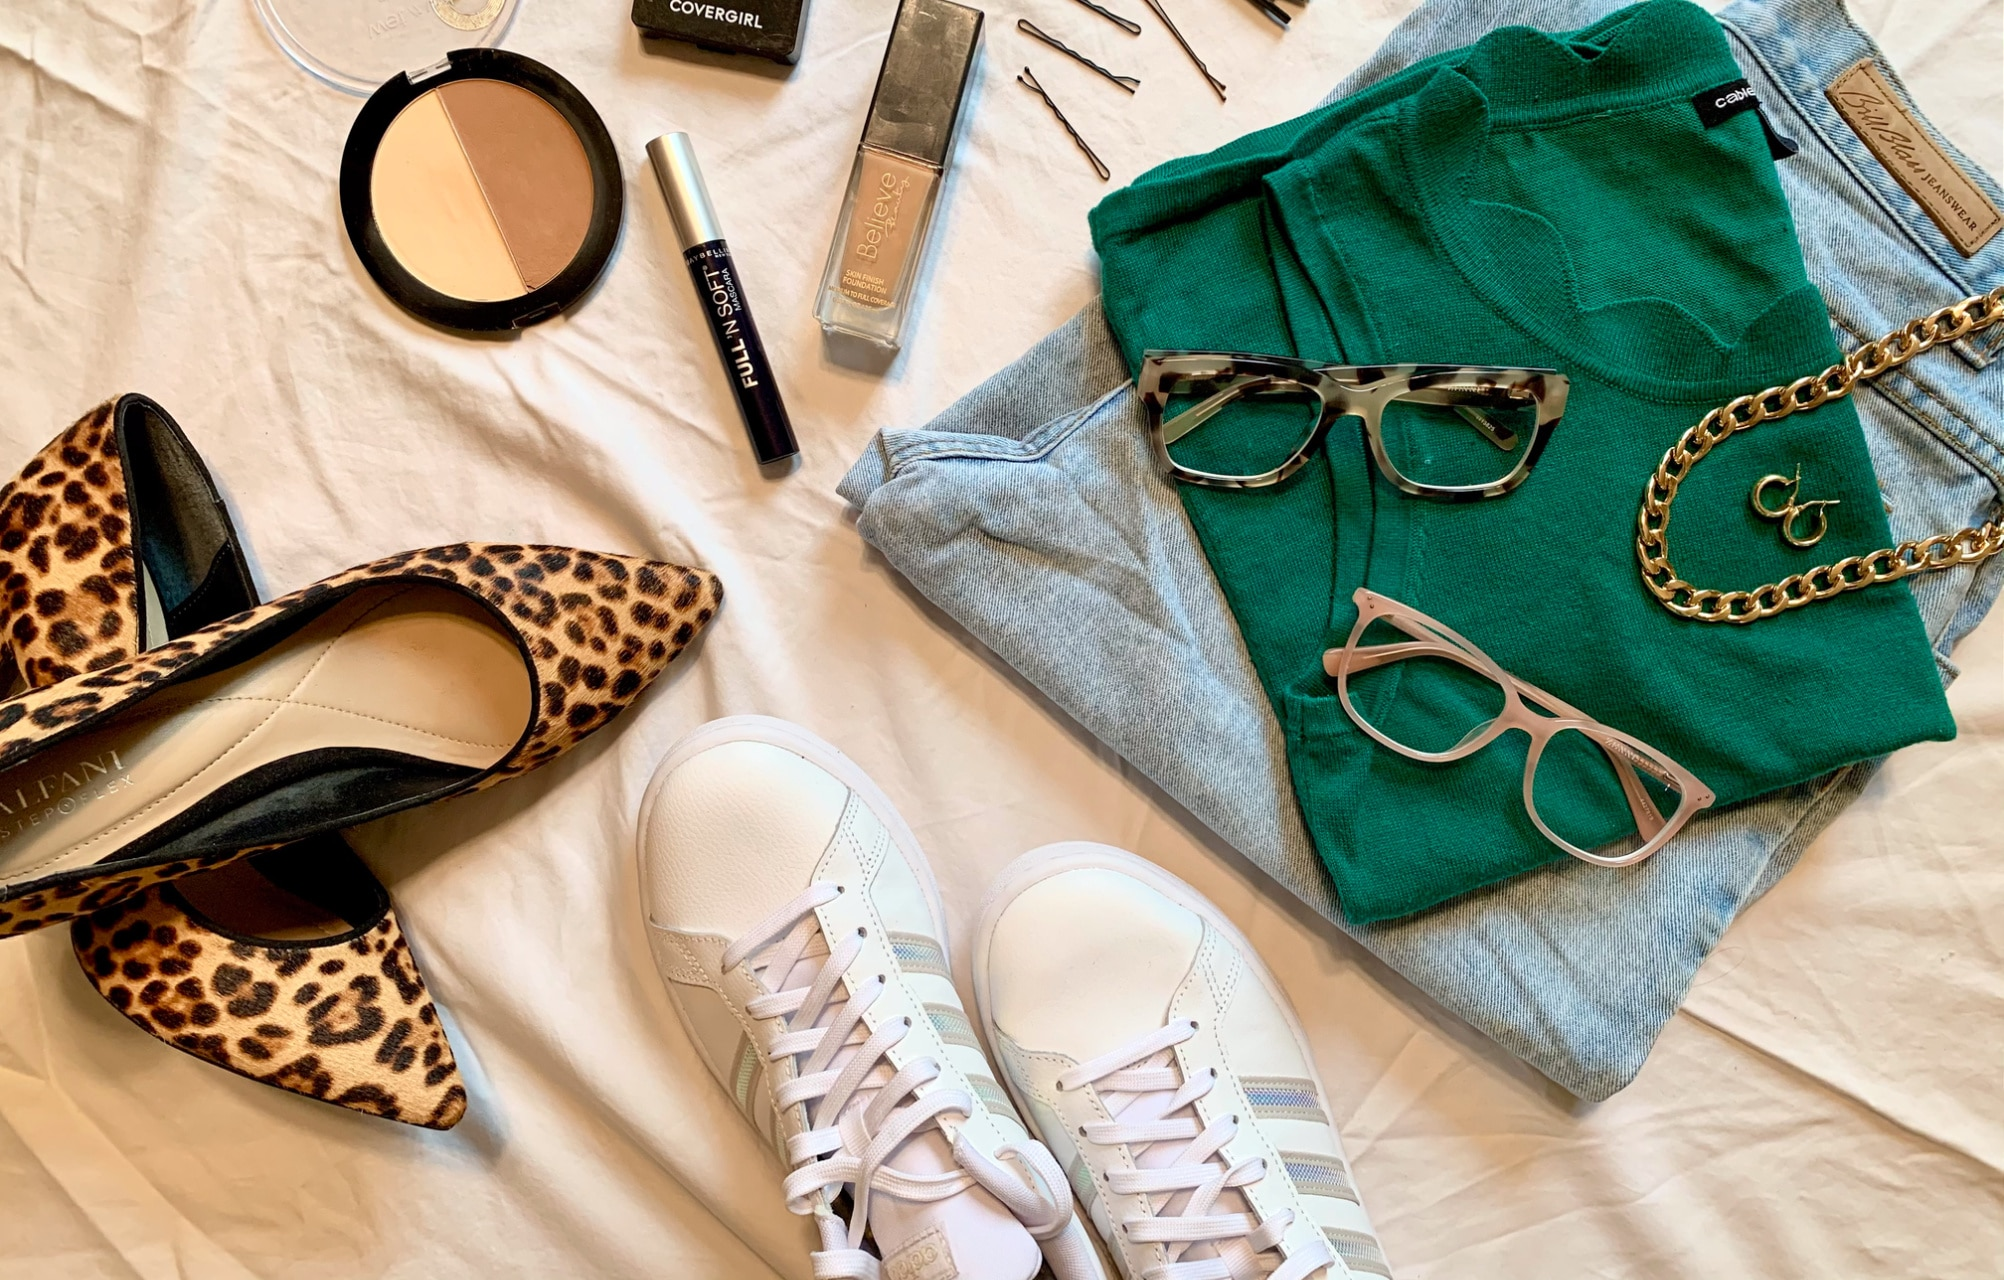 5 inexpensive ways to reinvent your style in minutes life full and frugal